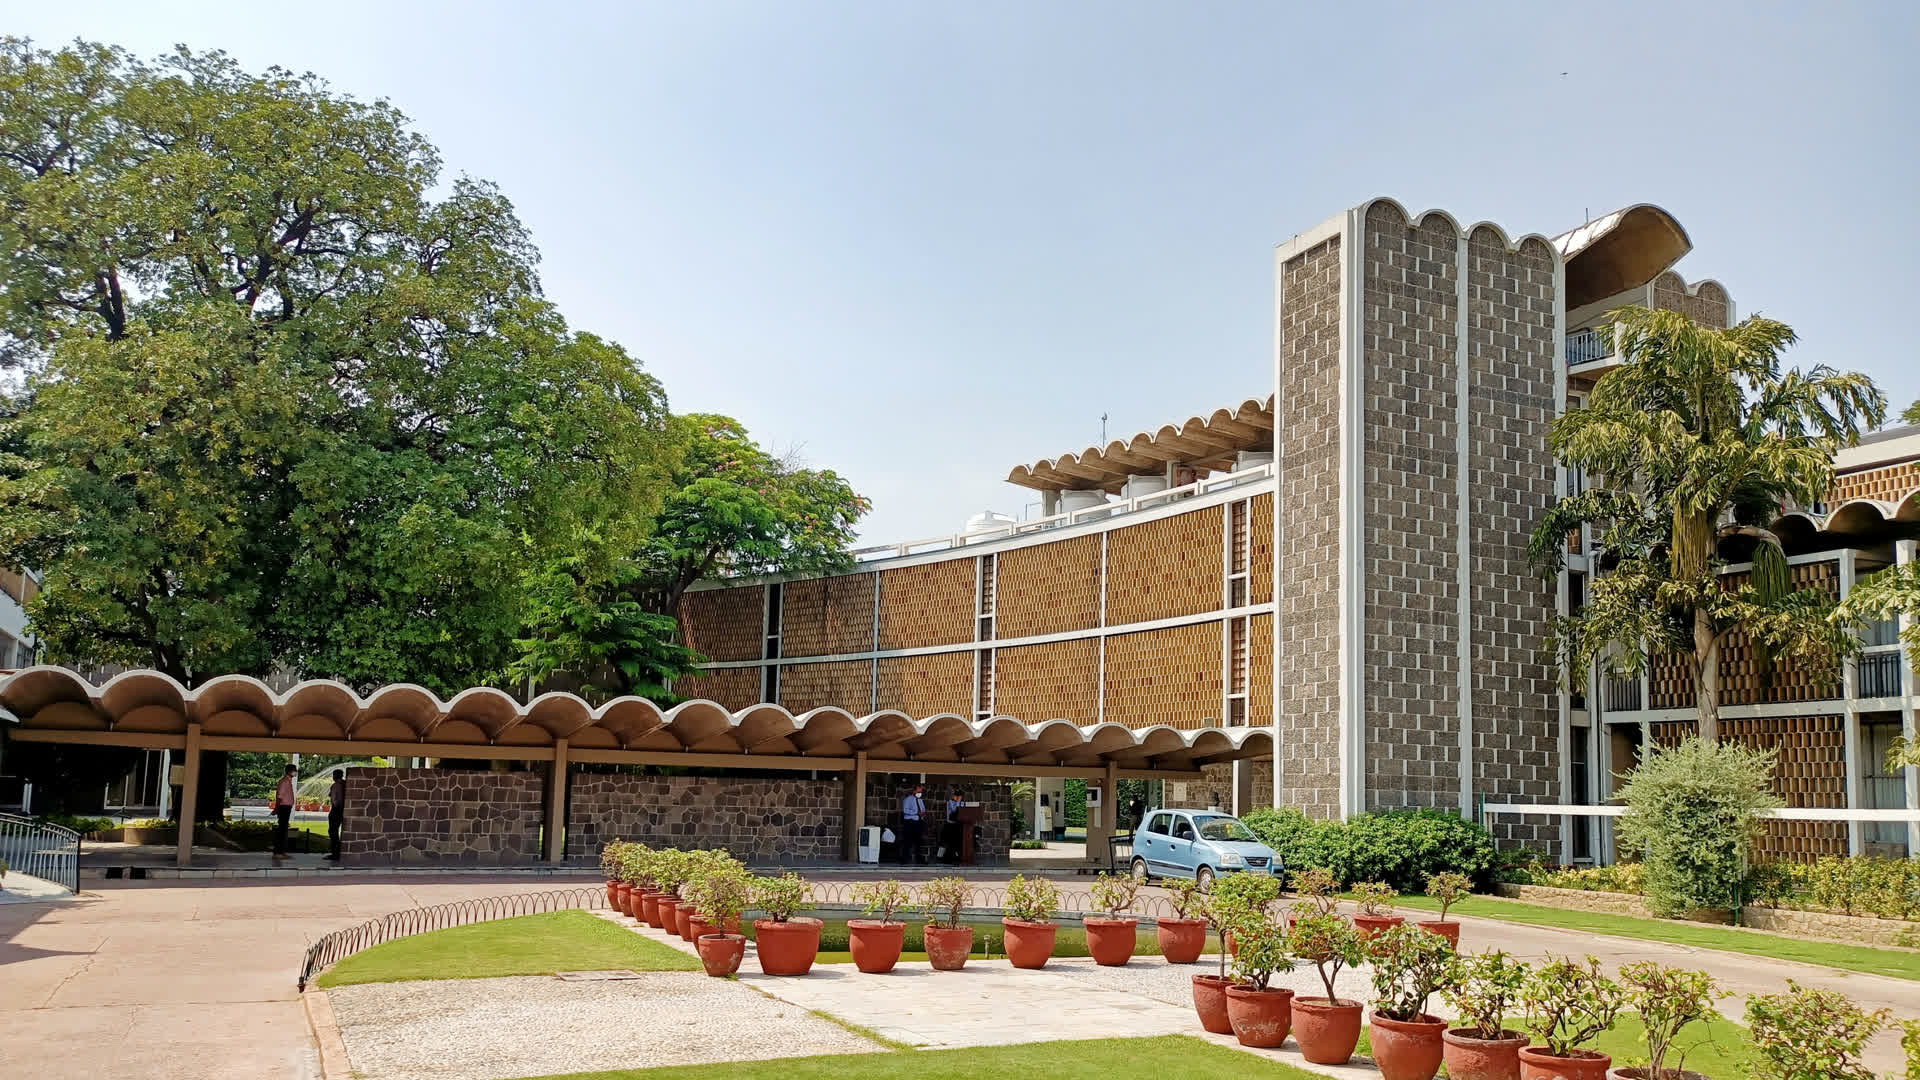 Lodhi Estate: Steinabad and the American Heart of Delhi